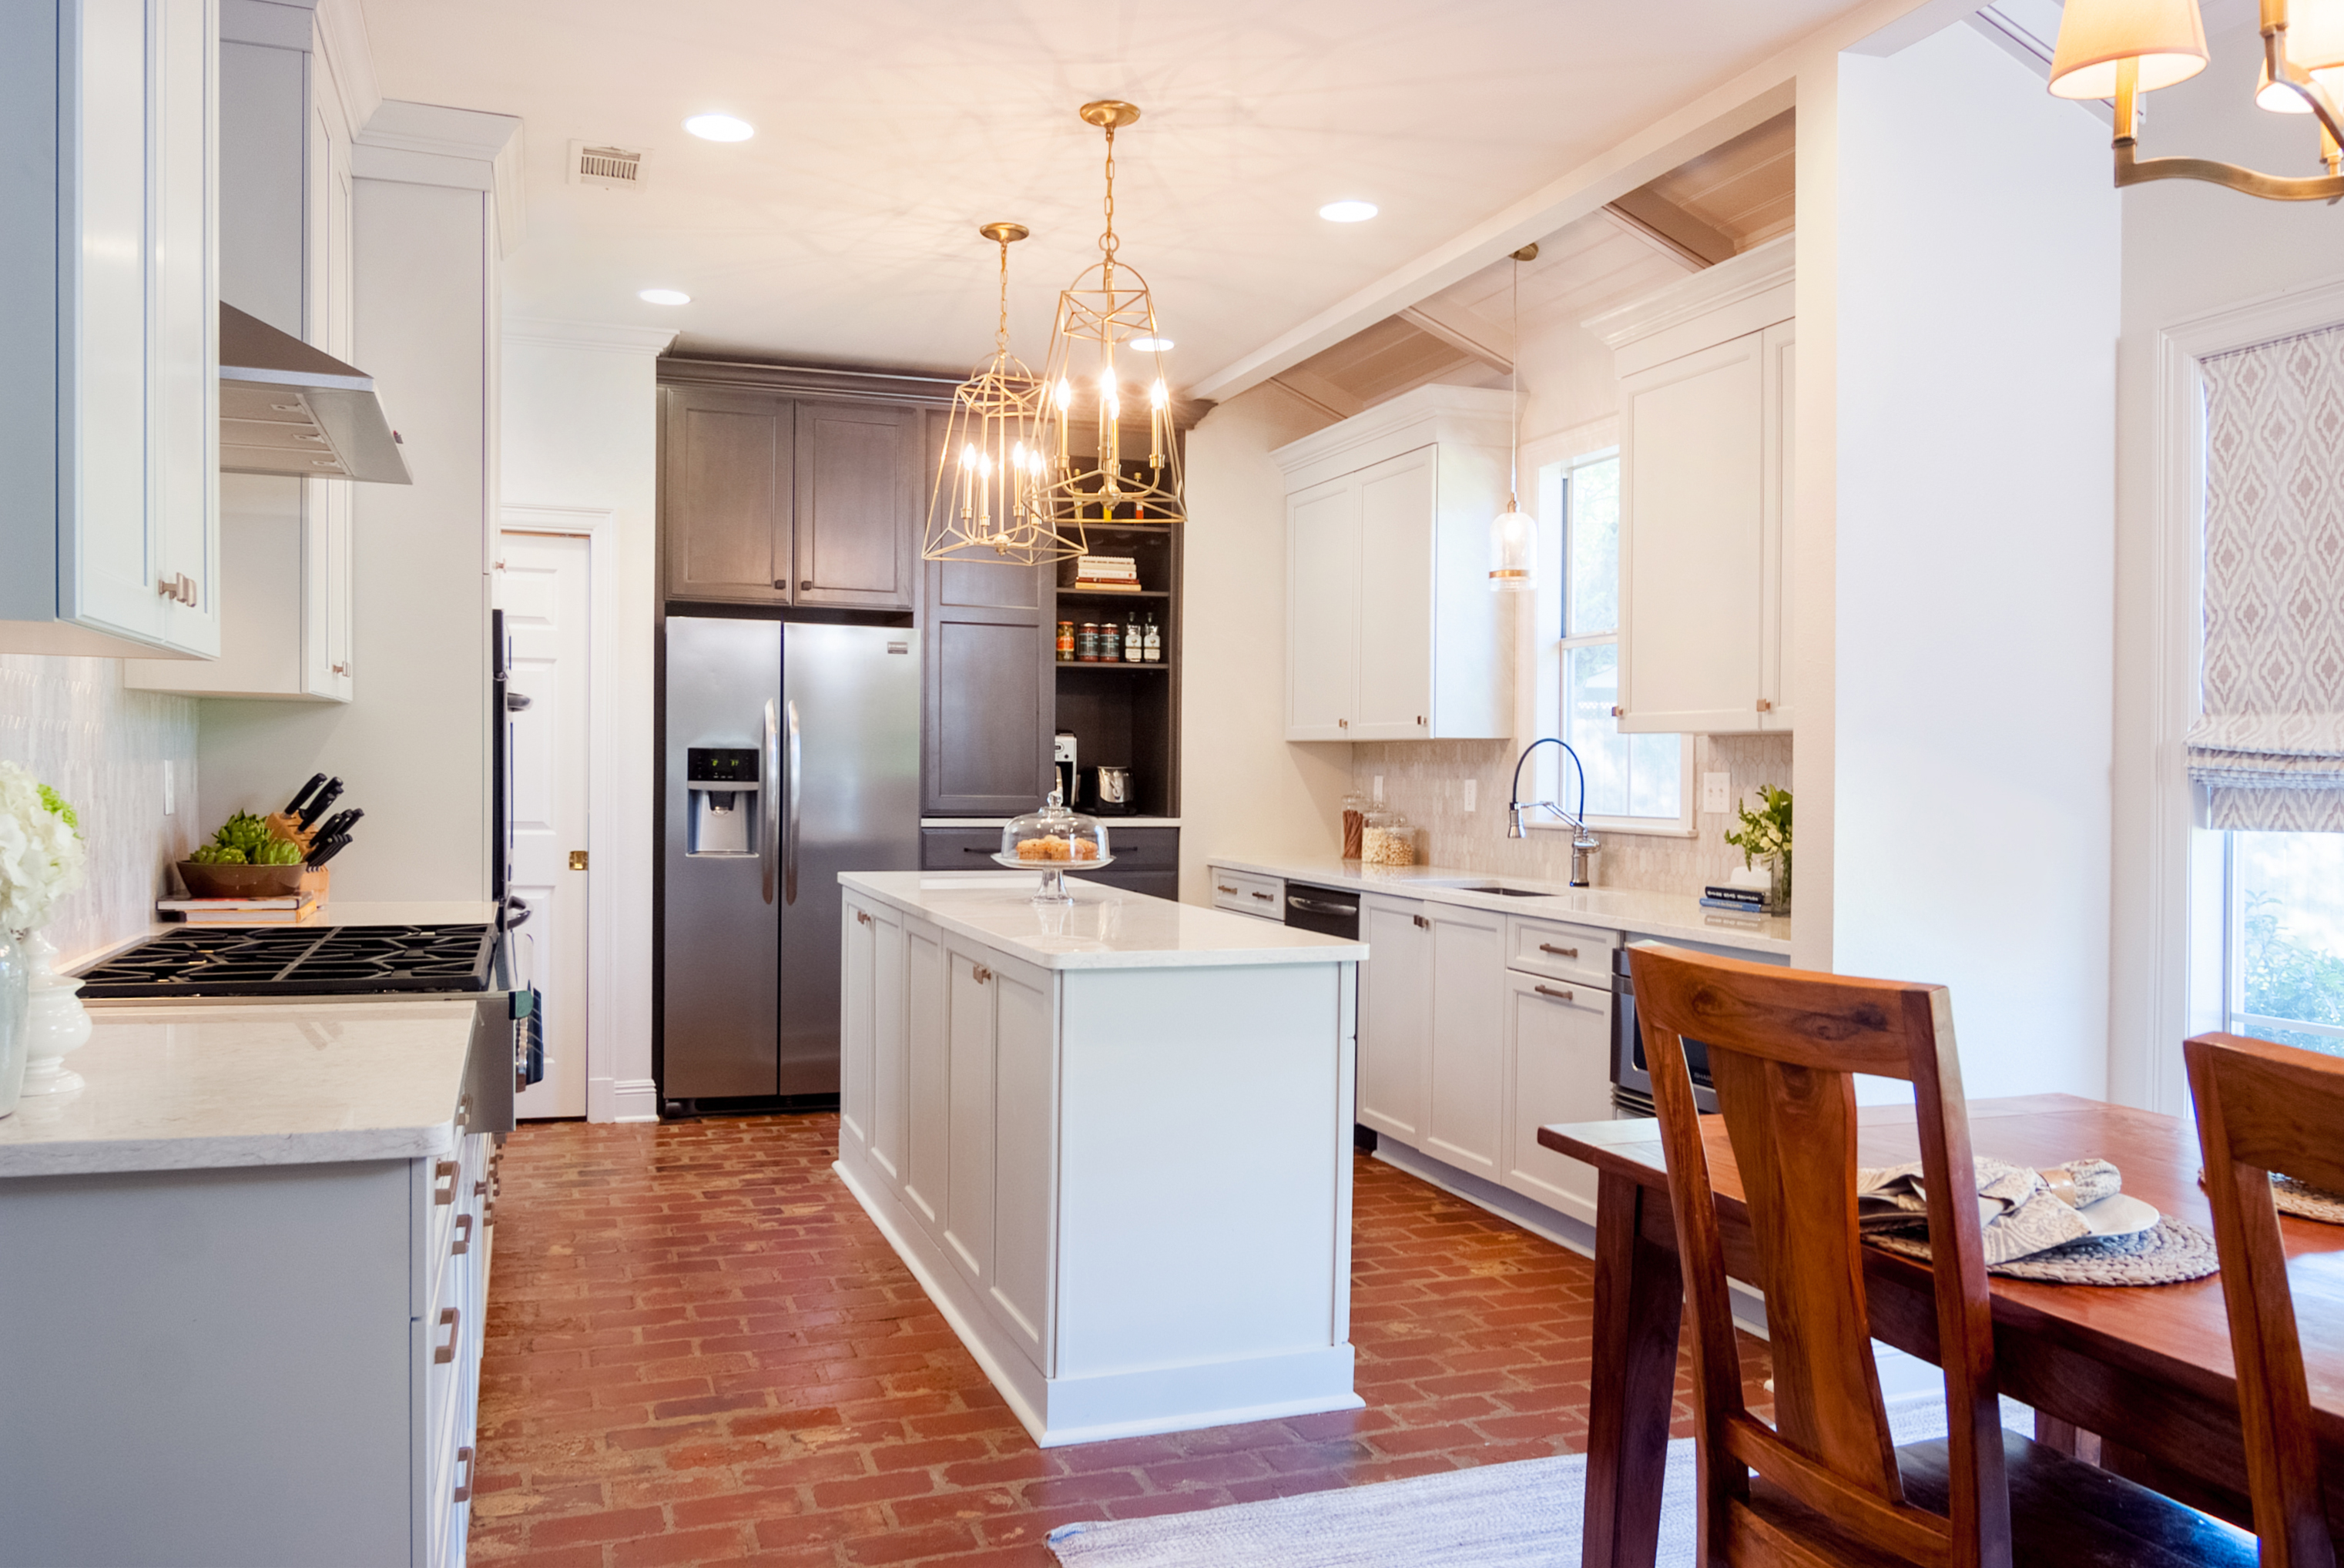 Home Renovation in Baton Rouge: 2019 Parade of Homes to Feature Remodels